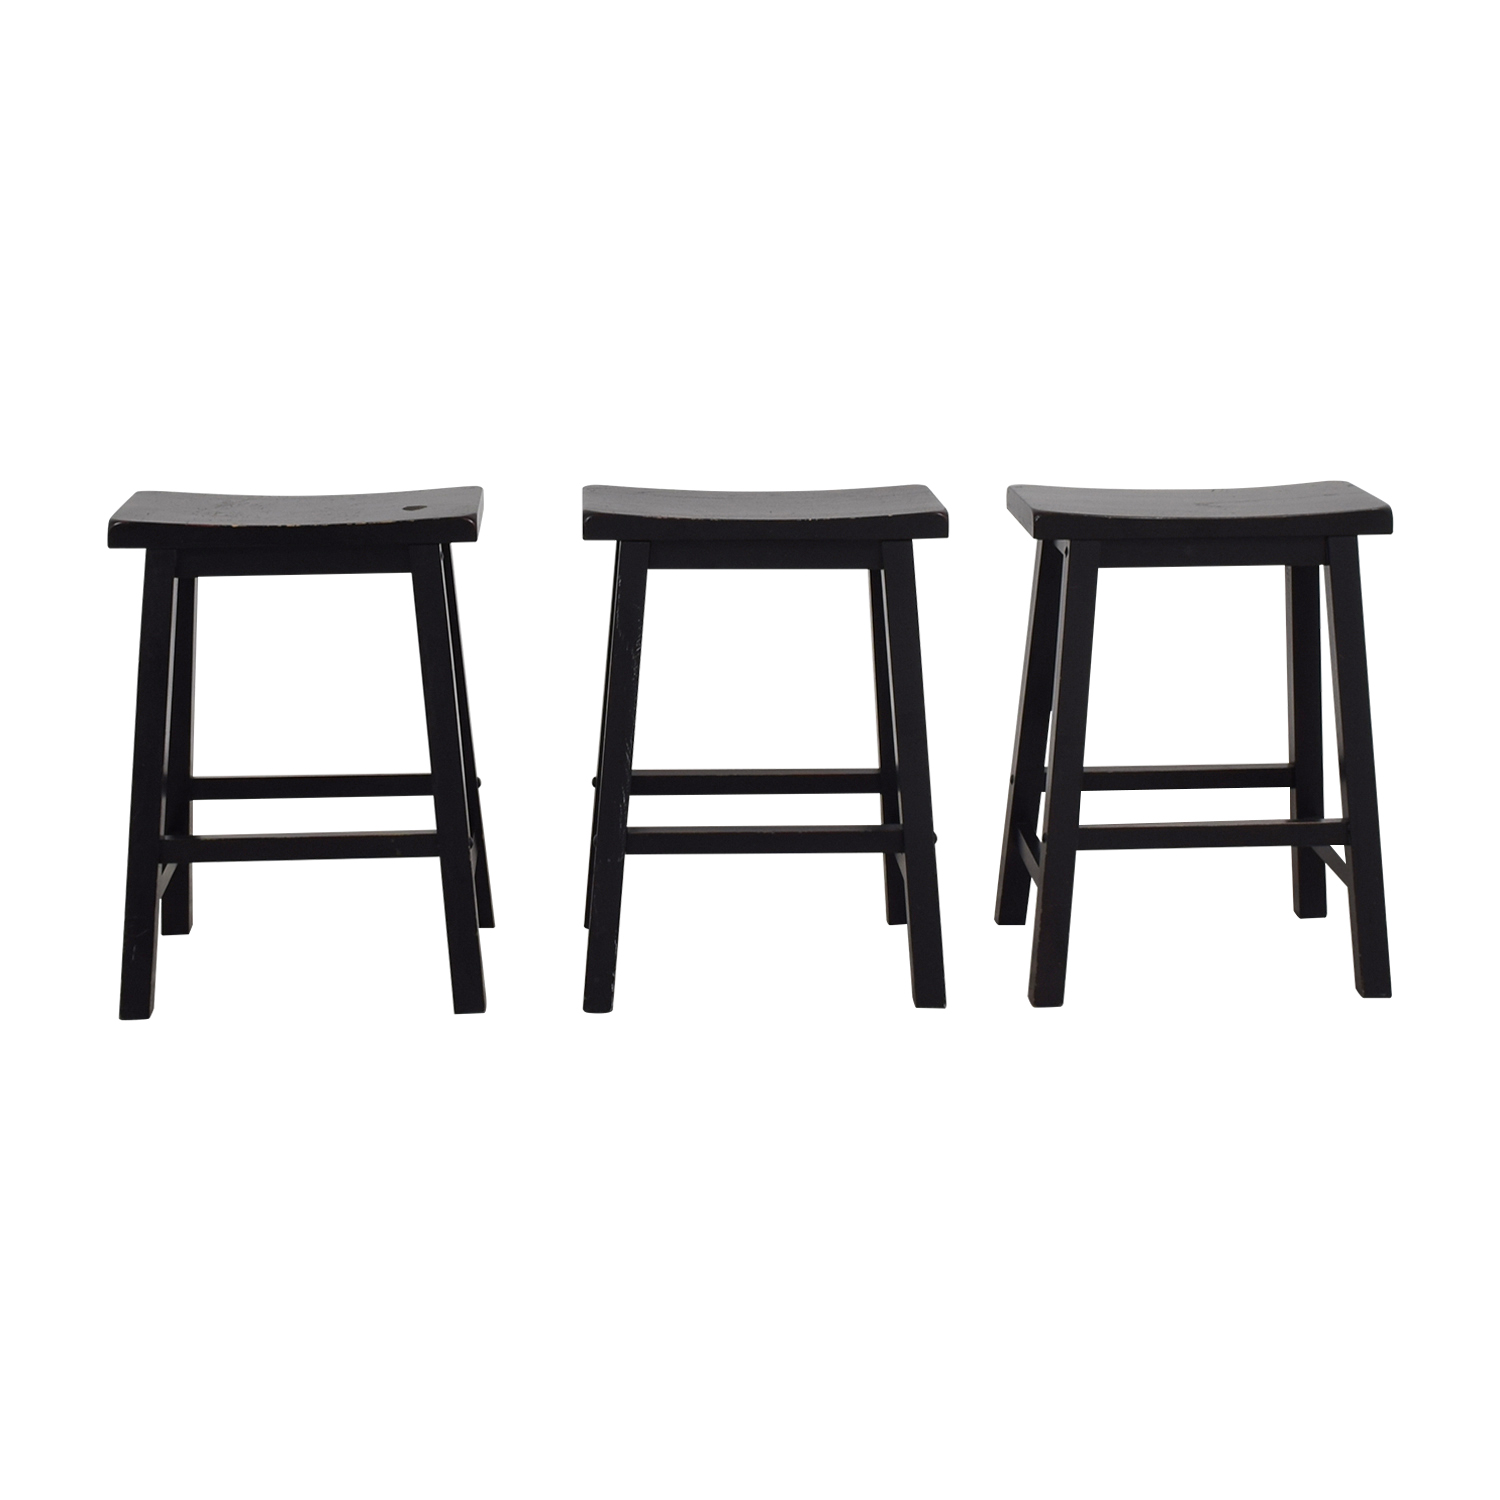 Wood StoolWinsome Wood 24inch Saddle Seat Counter Stool  : west elm black solid wood stools from algarveglobal.com size 1500 x 1500 jpeg 194kB